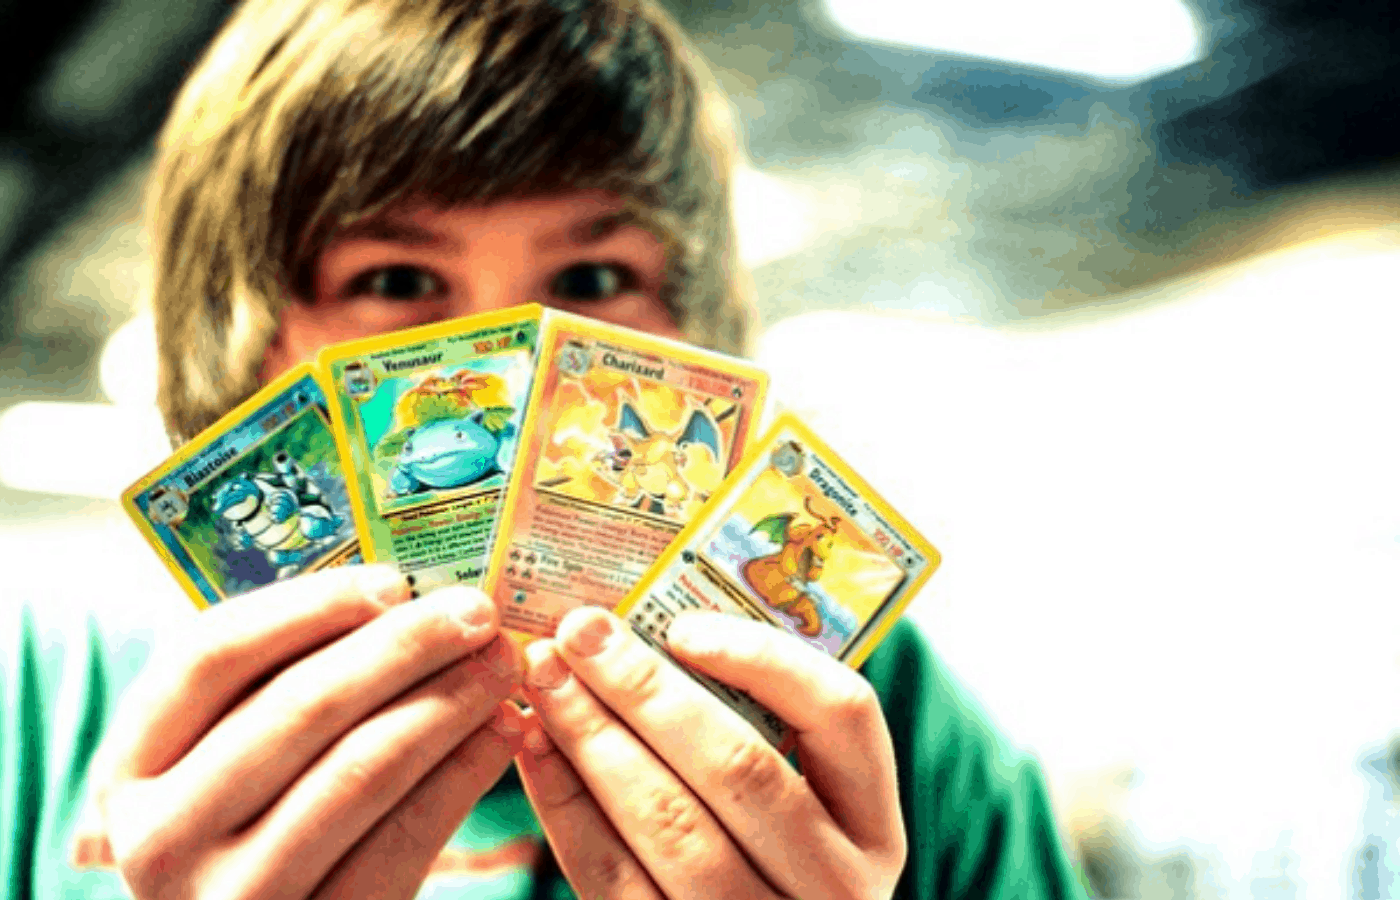 why are pokemon cards banned from school